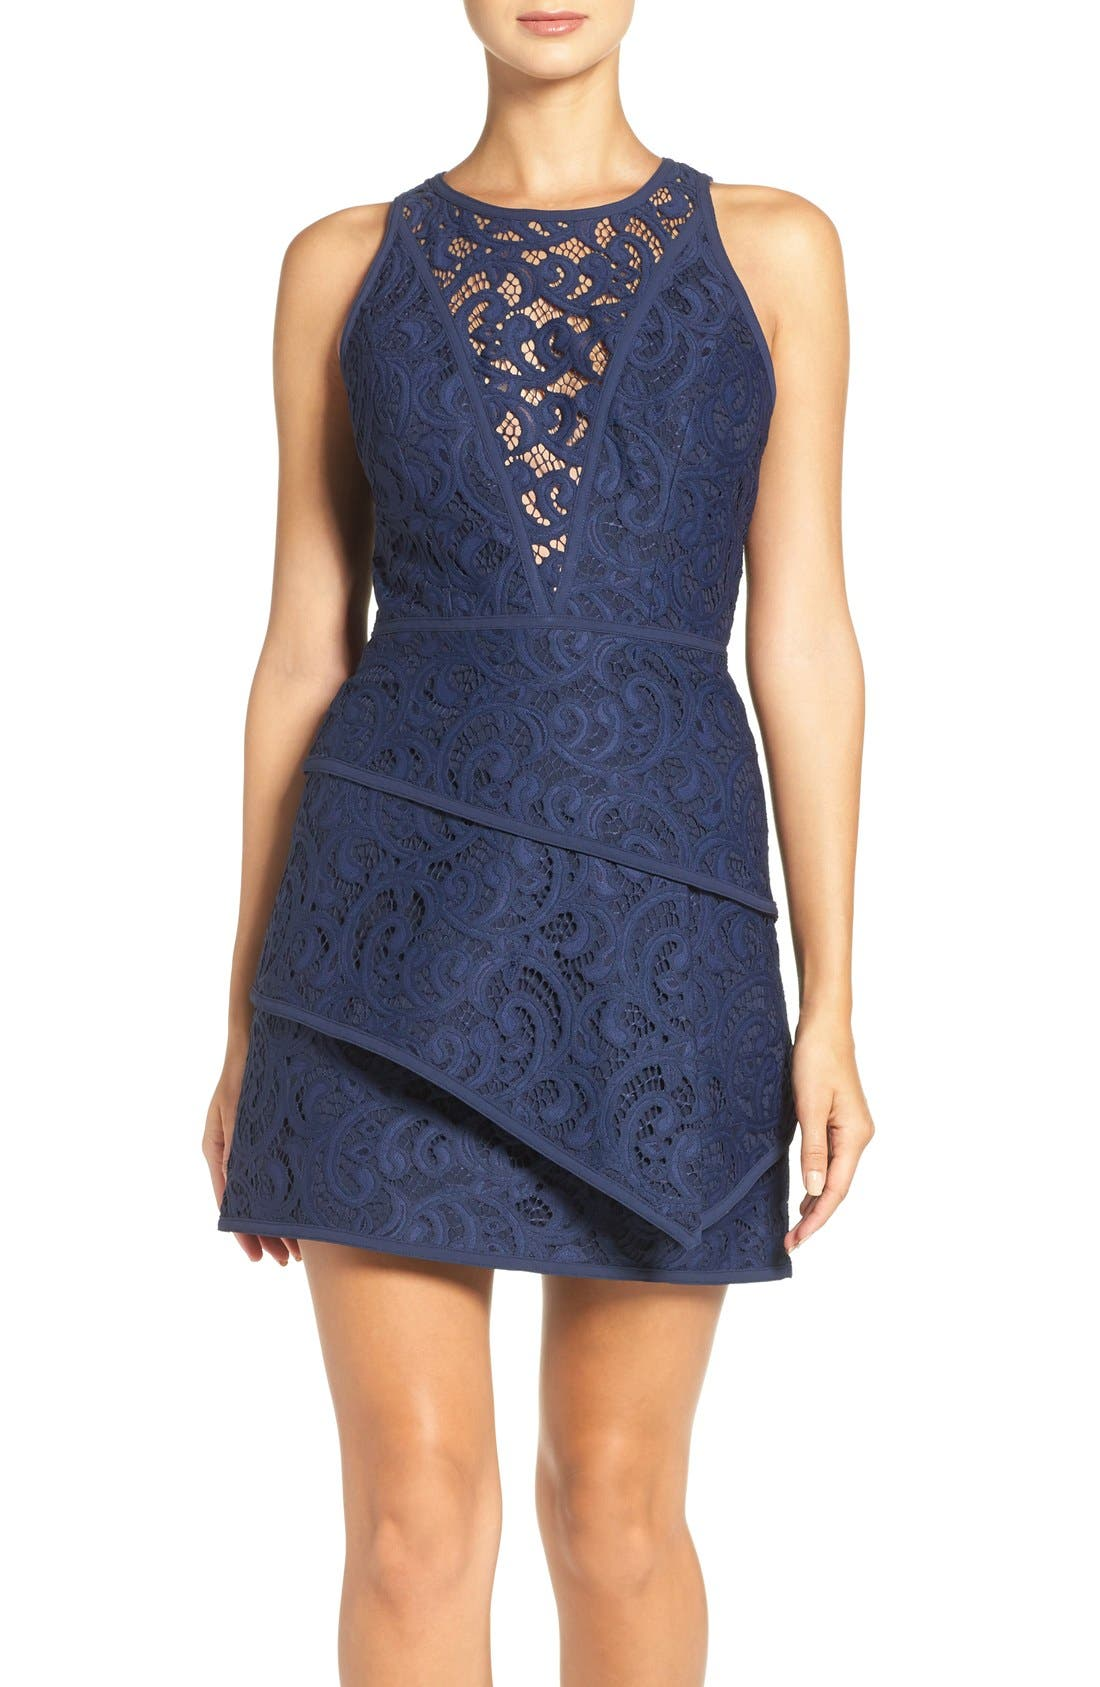 Alternate Image 1 Selected - BCBGMAXAZRIA 'Hannah' Tiered Lace Fit & Flare Dress